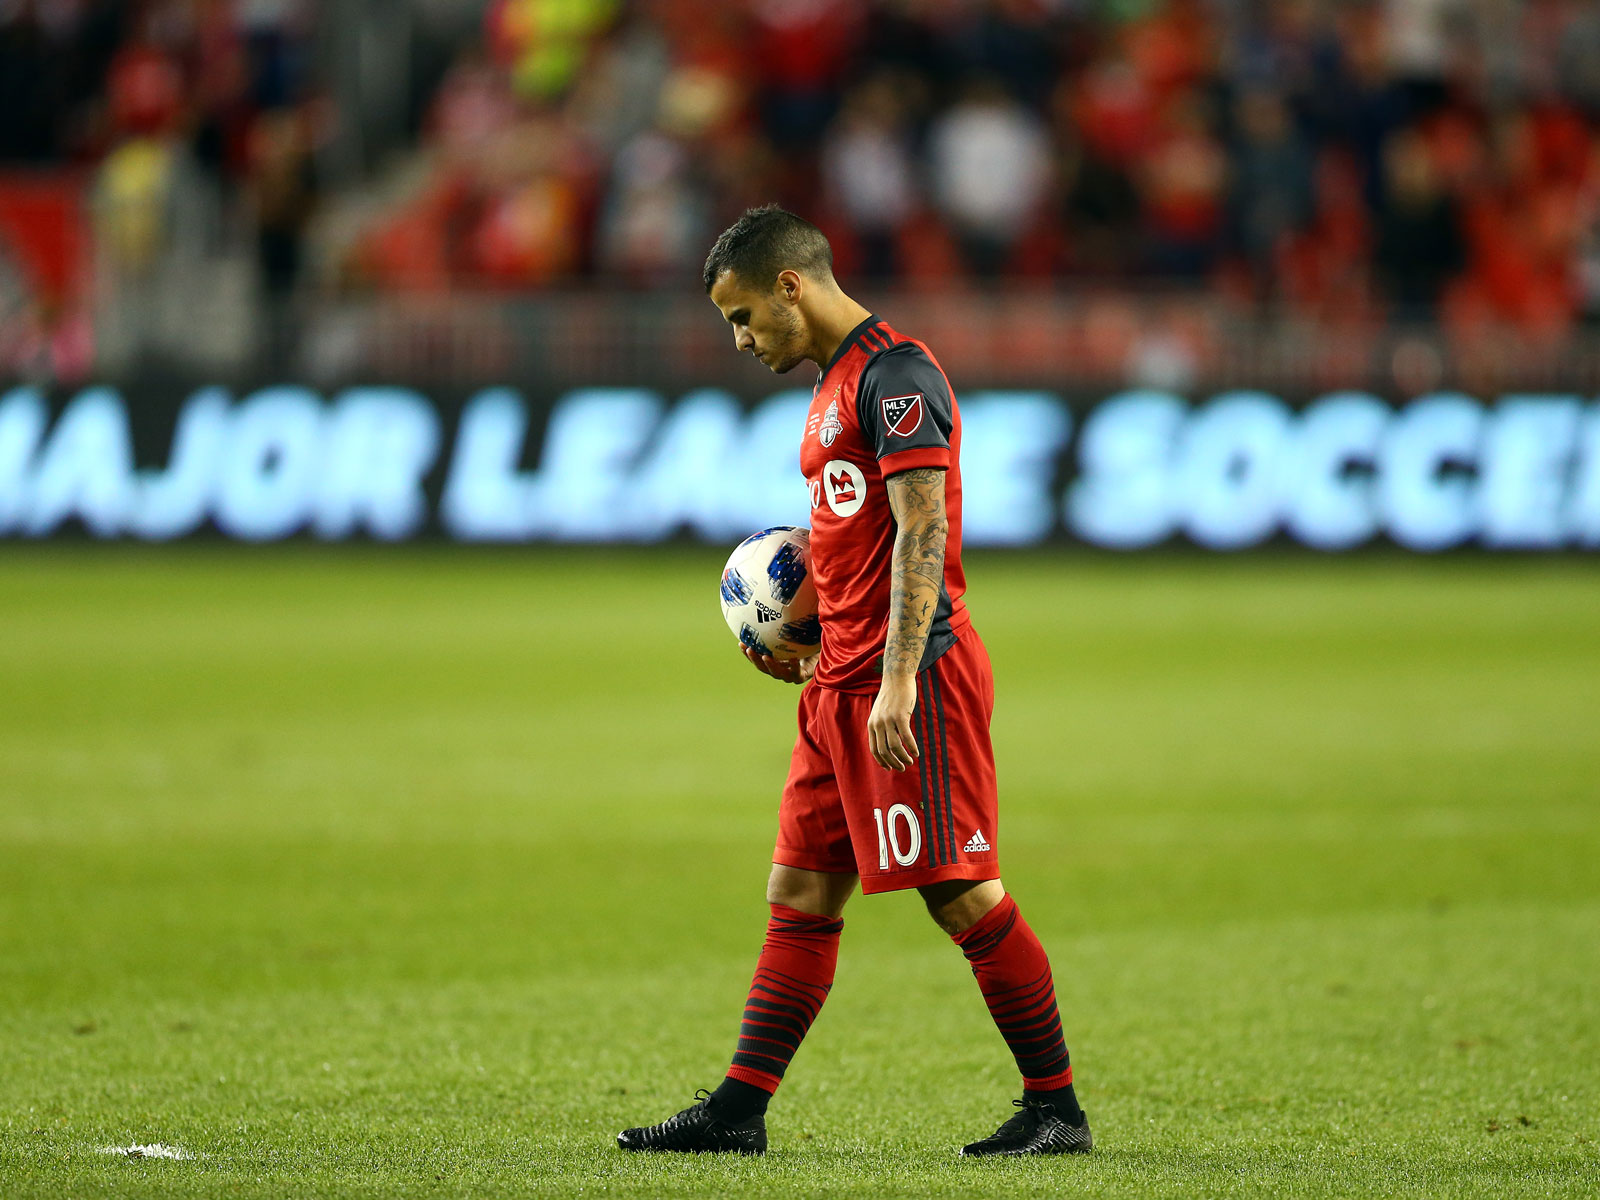 Sebastian Giovinco and Toronto FC are slipping out of playoff contention in MLS